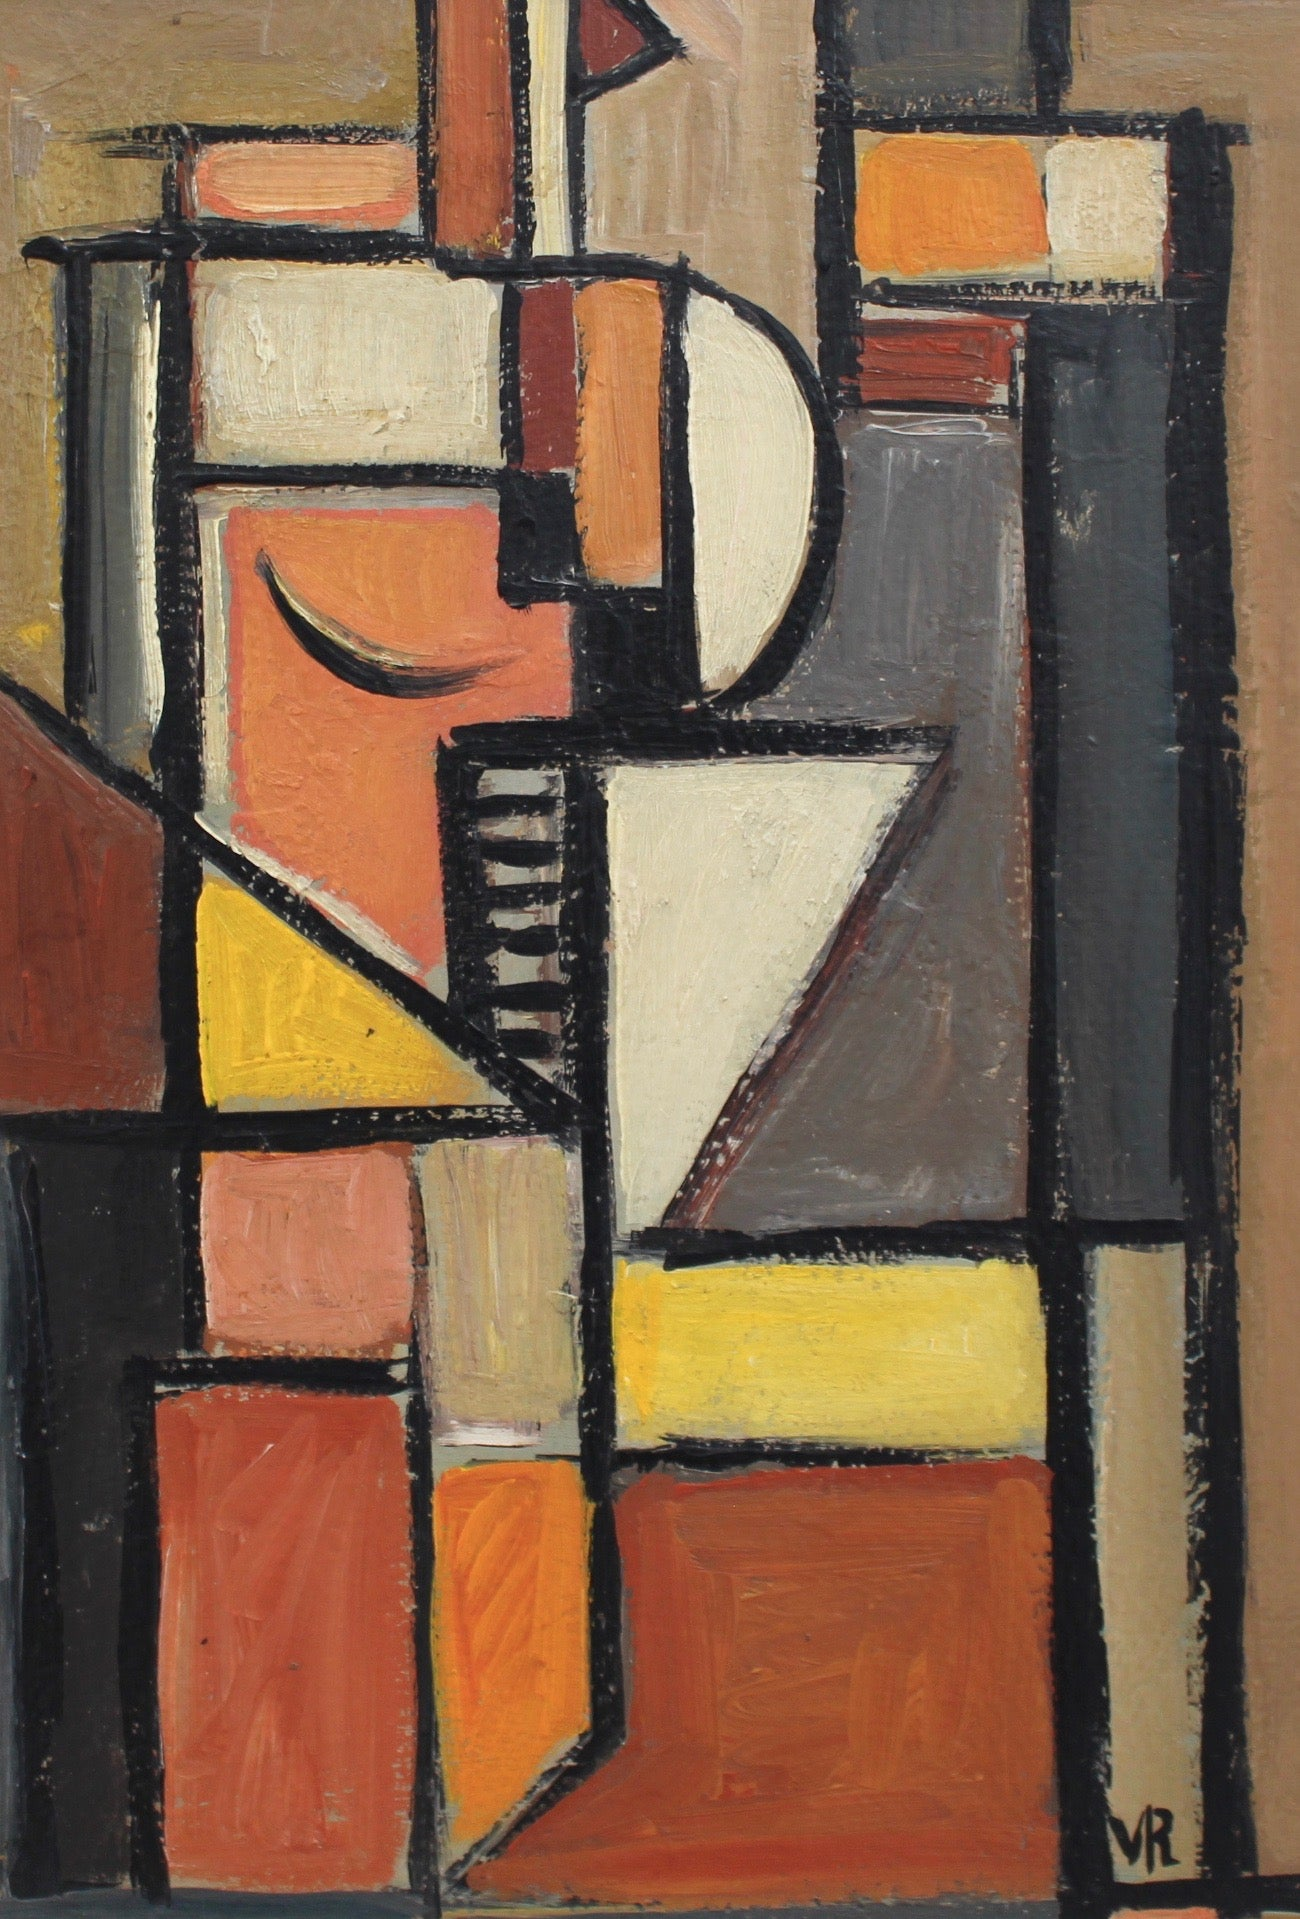 Cubist Composition by VR (circa 1950s - 70s)